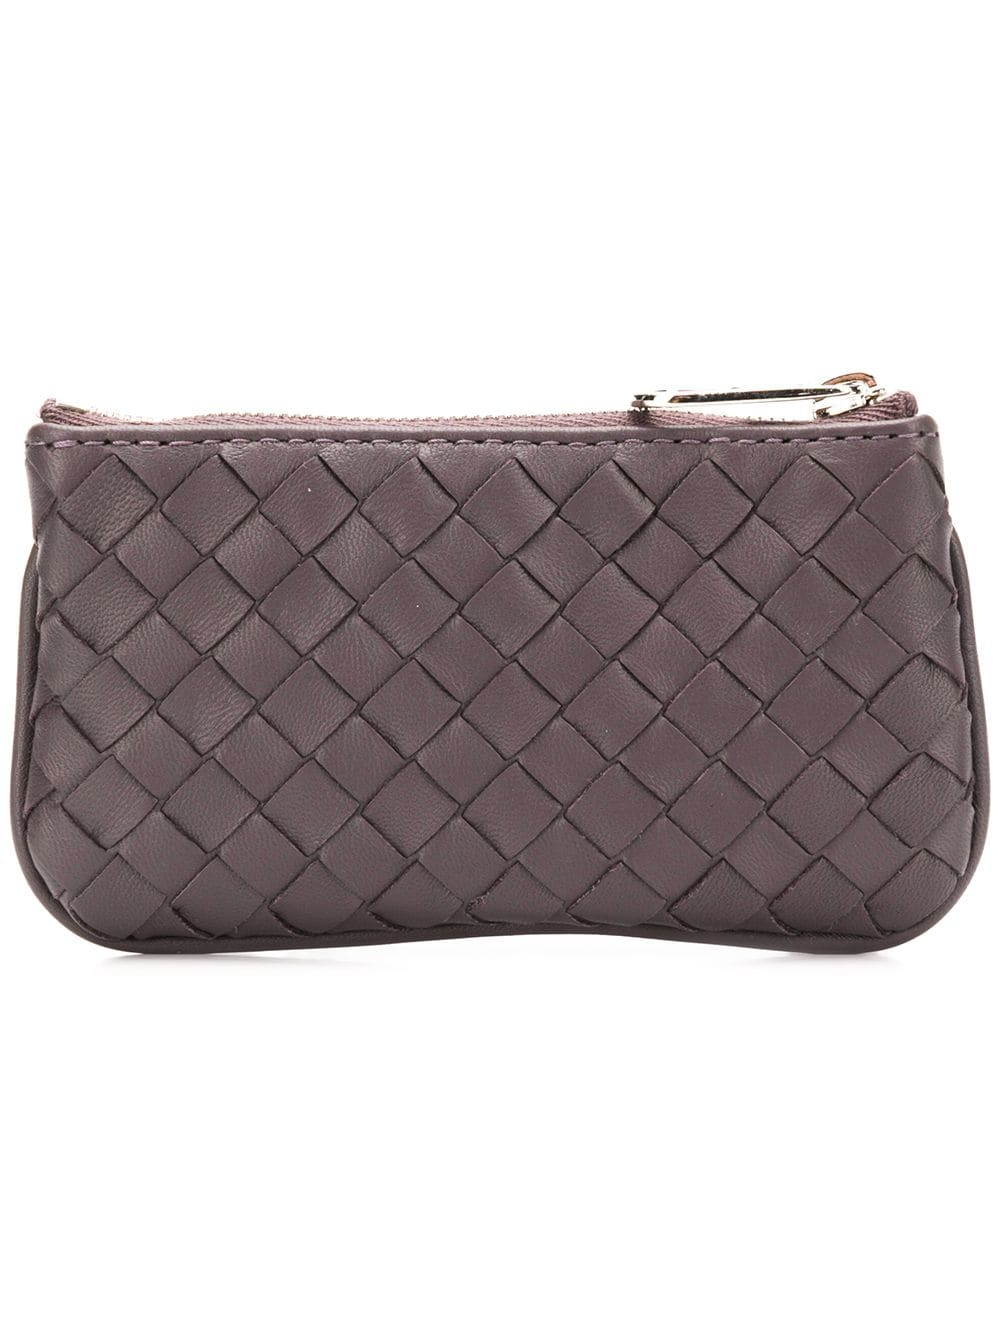 b7f253e7ec59 Bottega Veneta Intrecciato wallet - Brown - Glami.hu